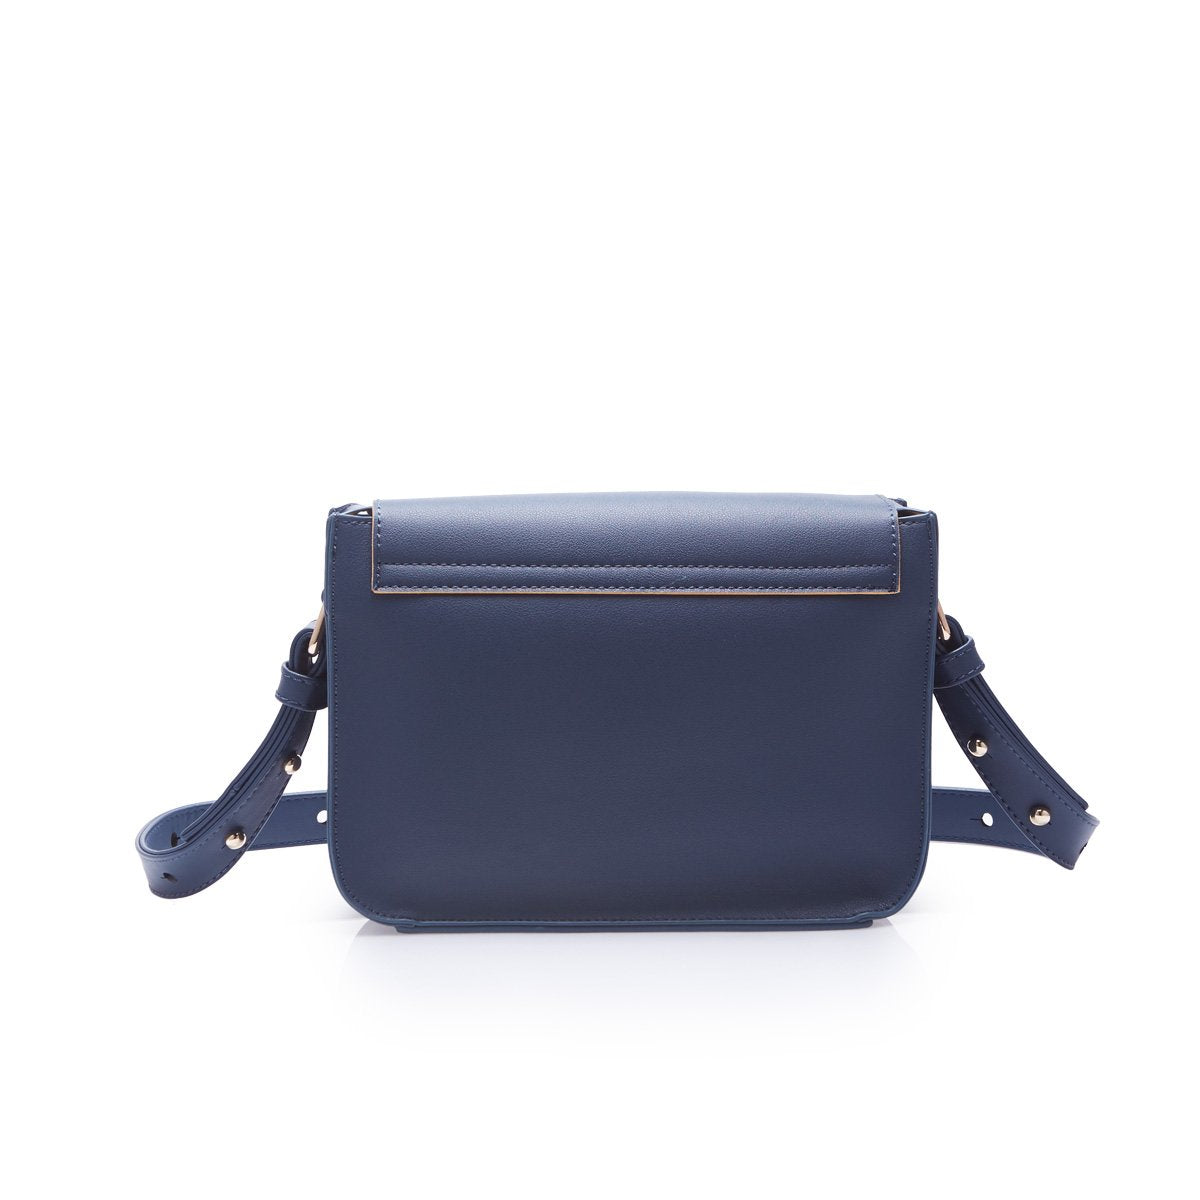 ESATCH S - NAVY